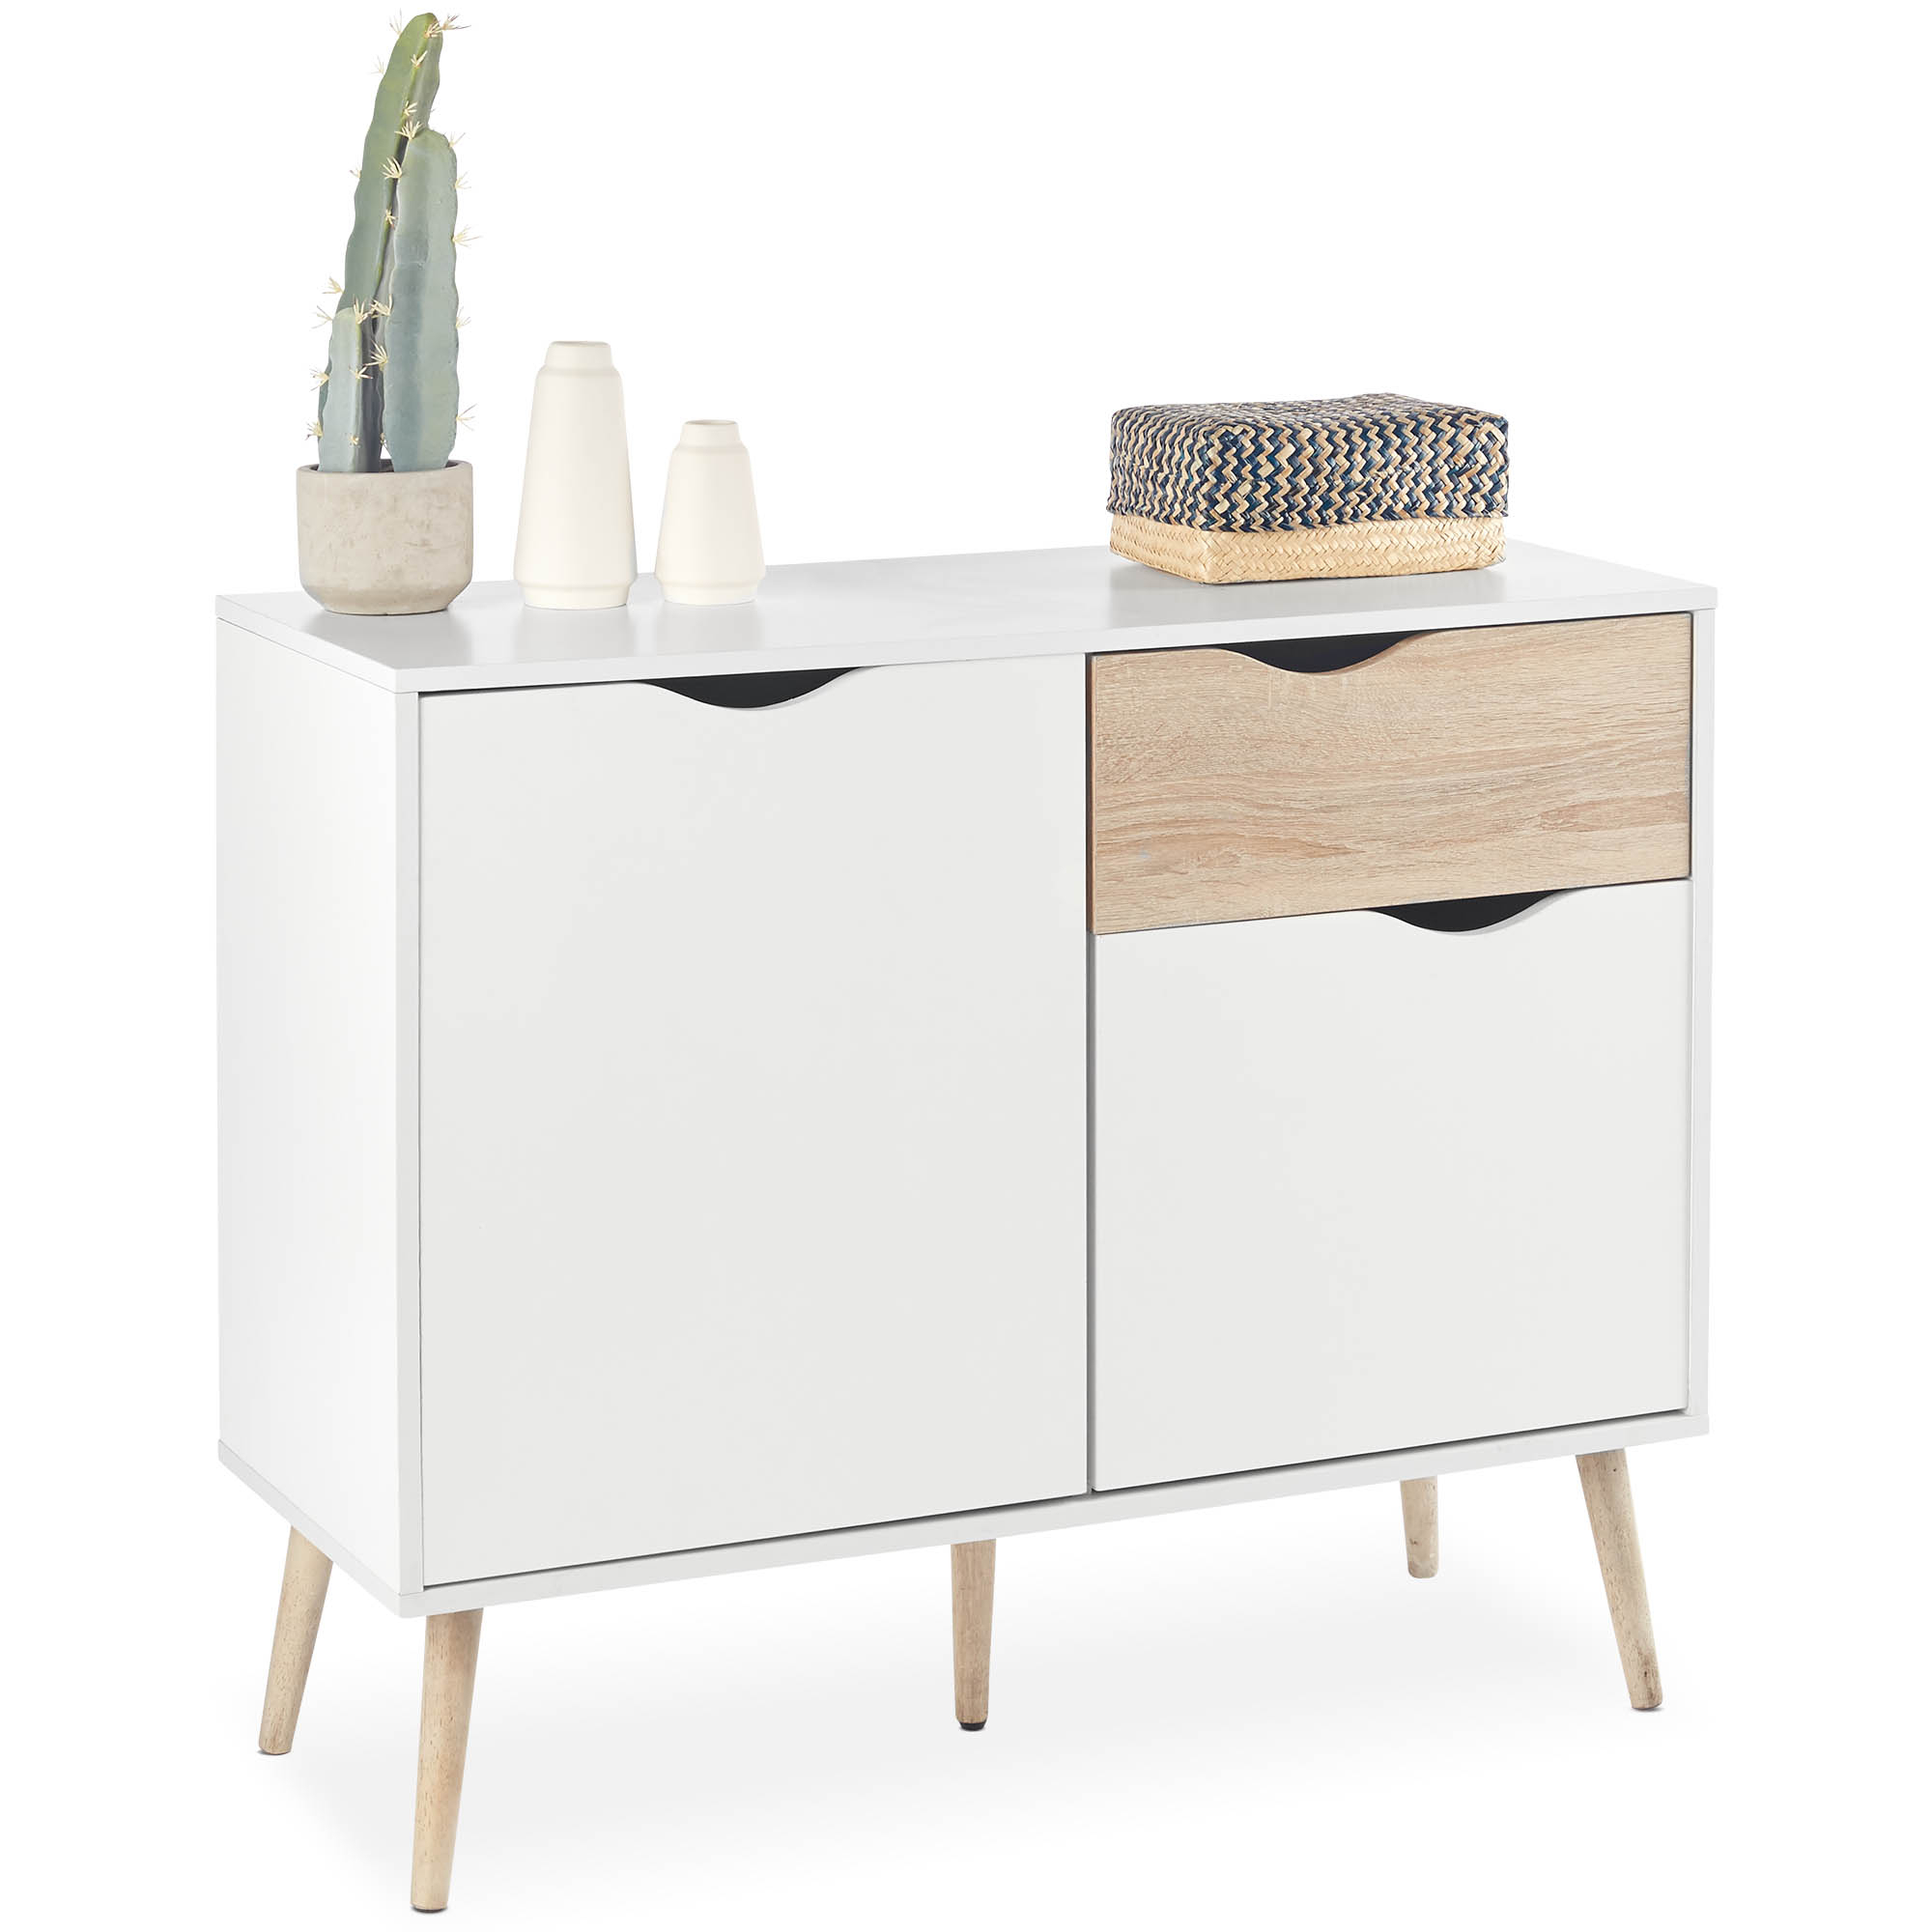 Details About Vonhaus Sideboard Scandinavian Nordic Style – White And Light Oak Effect In Recent Thite Sideboards (View 6 of 20)